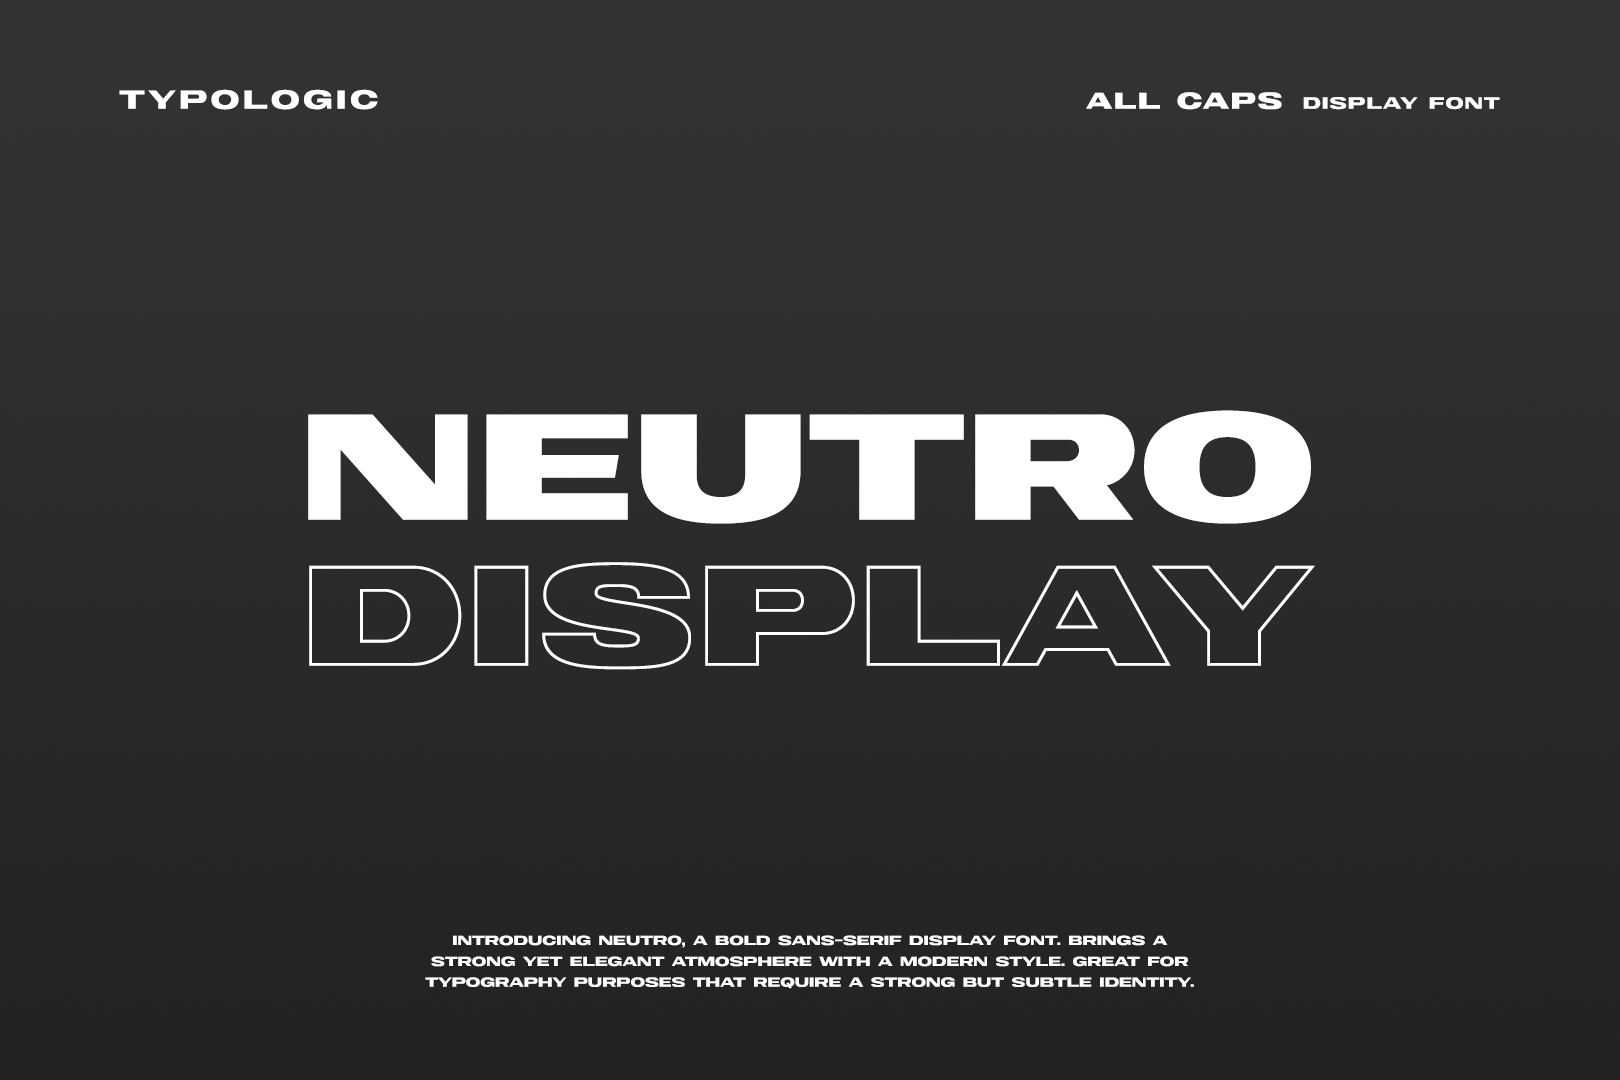 Neutro Display Free Font - sans-serif